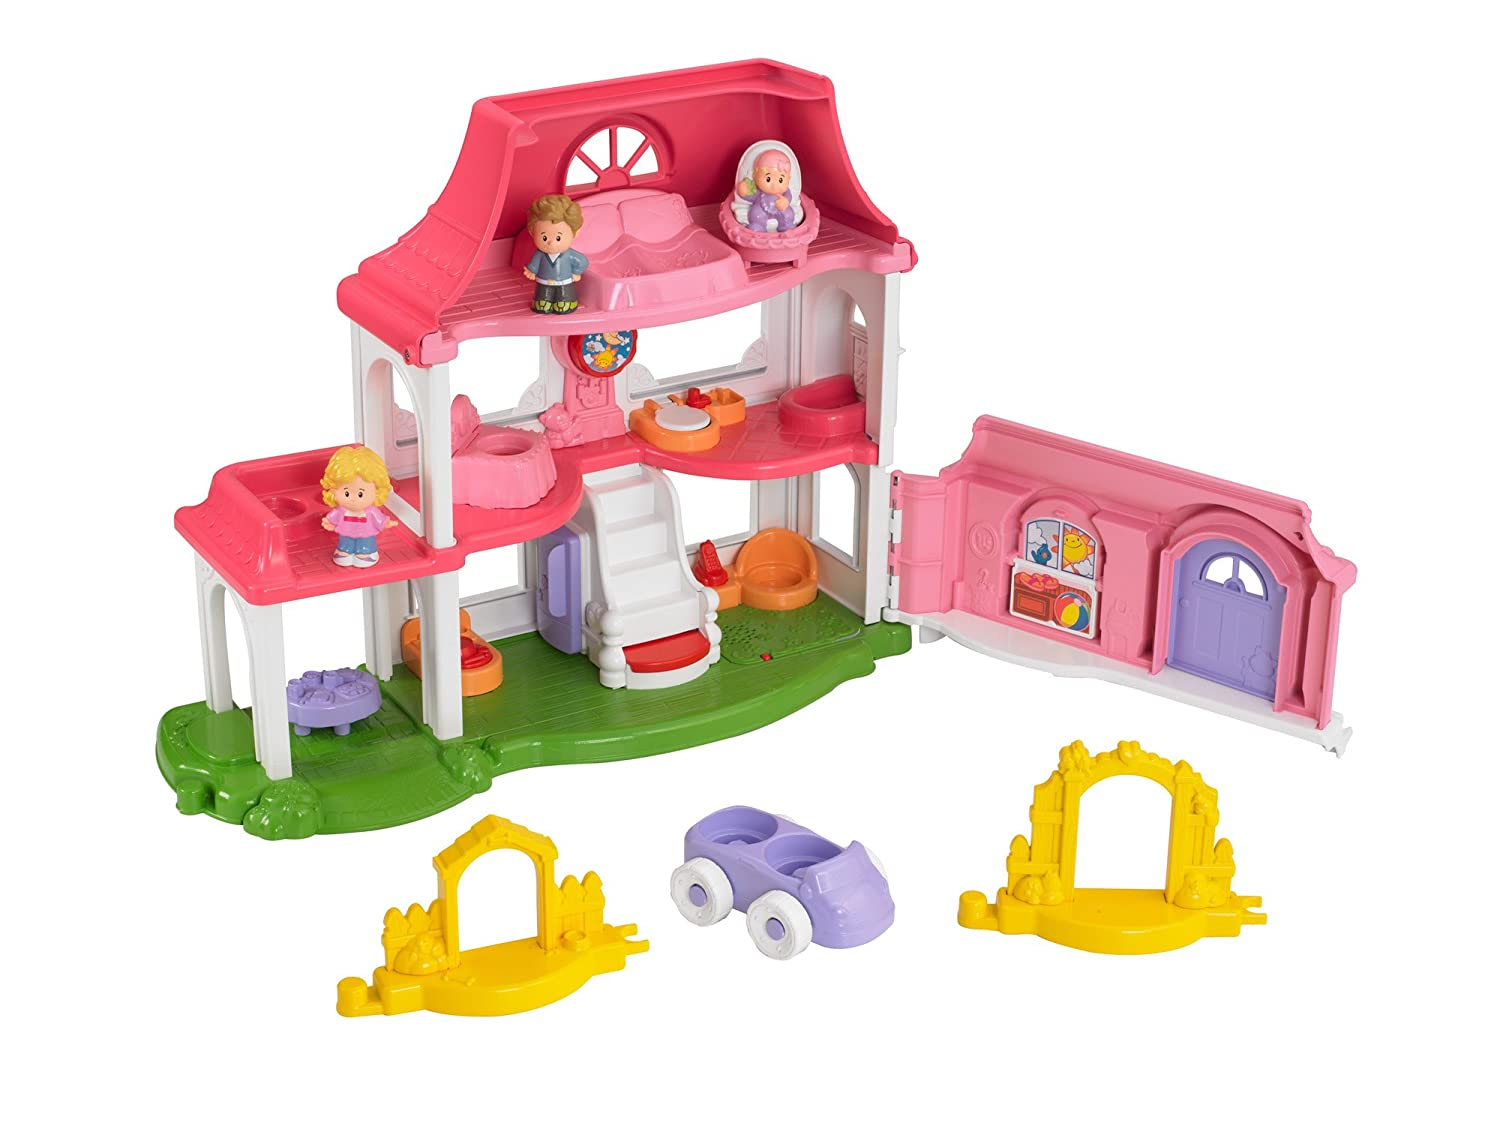 Fisher Price Little People Happy Sounds Casa de muñecas con sonido